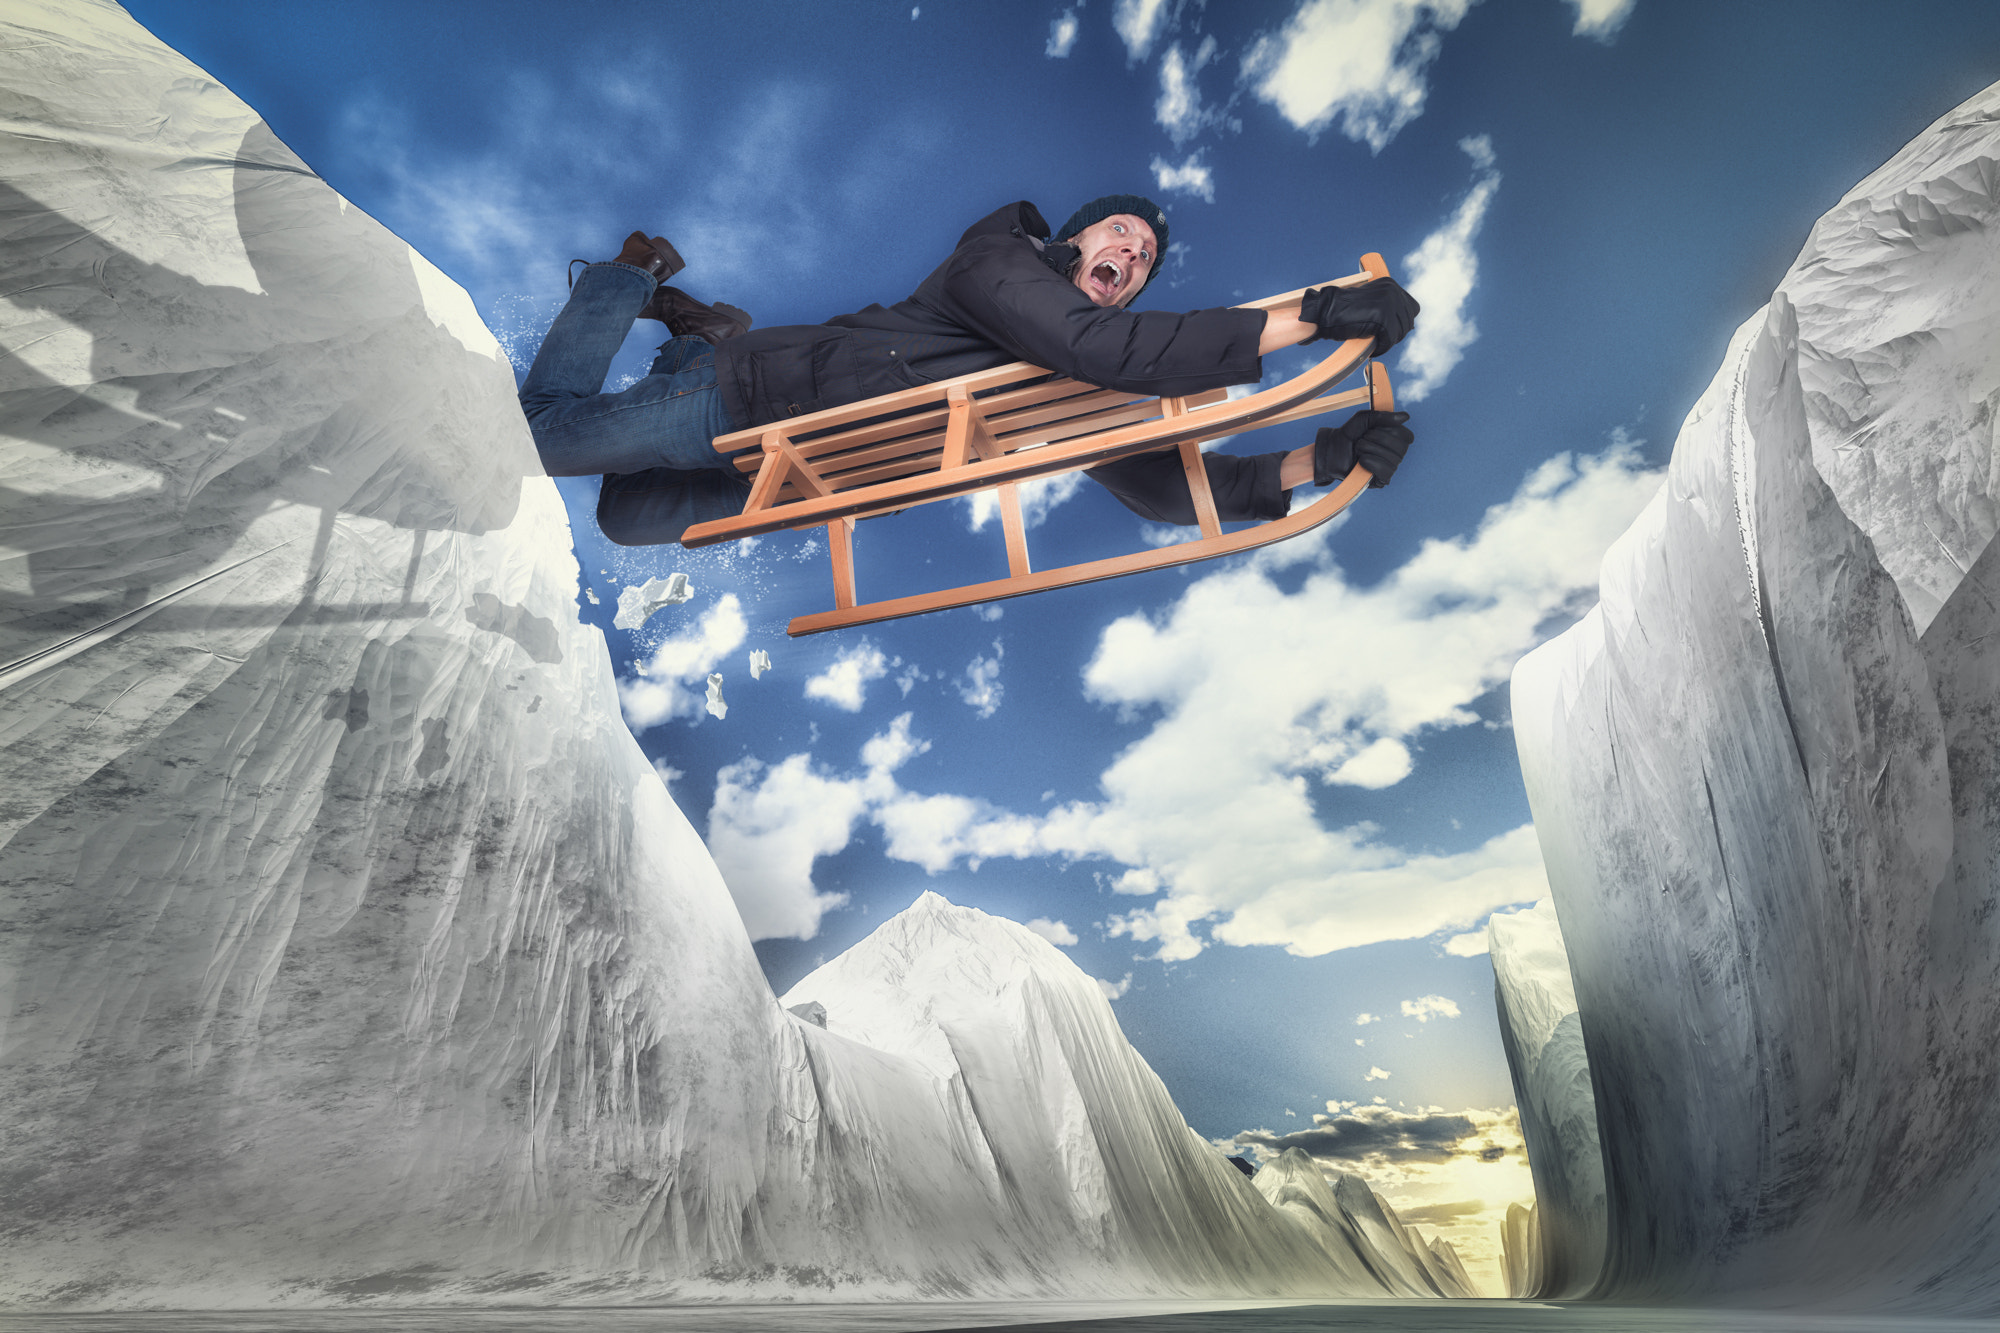 Photograph Extreme Tobogganing by John Wilhelm is a photoholic on 500px